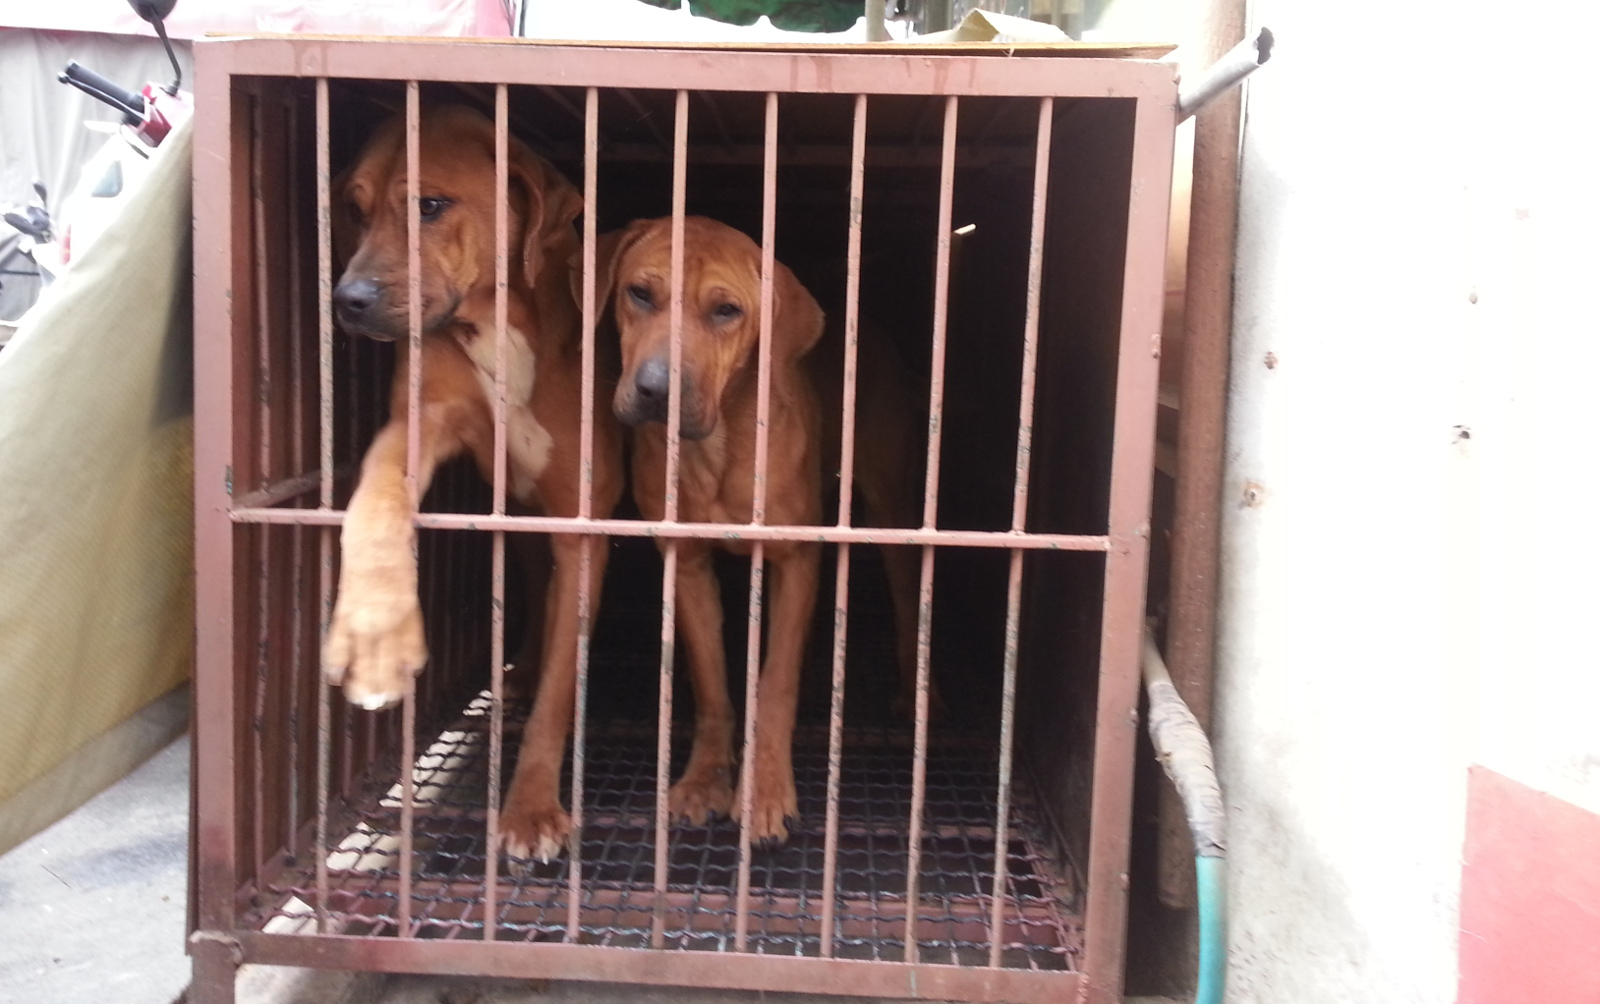 Culture Versus Compassion: Where Does South Korea Draw the Line on Dog Meat